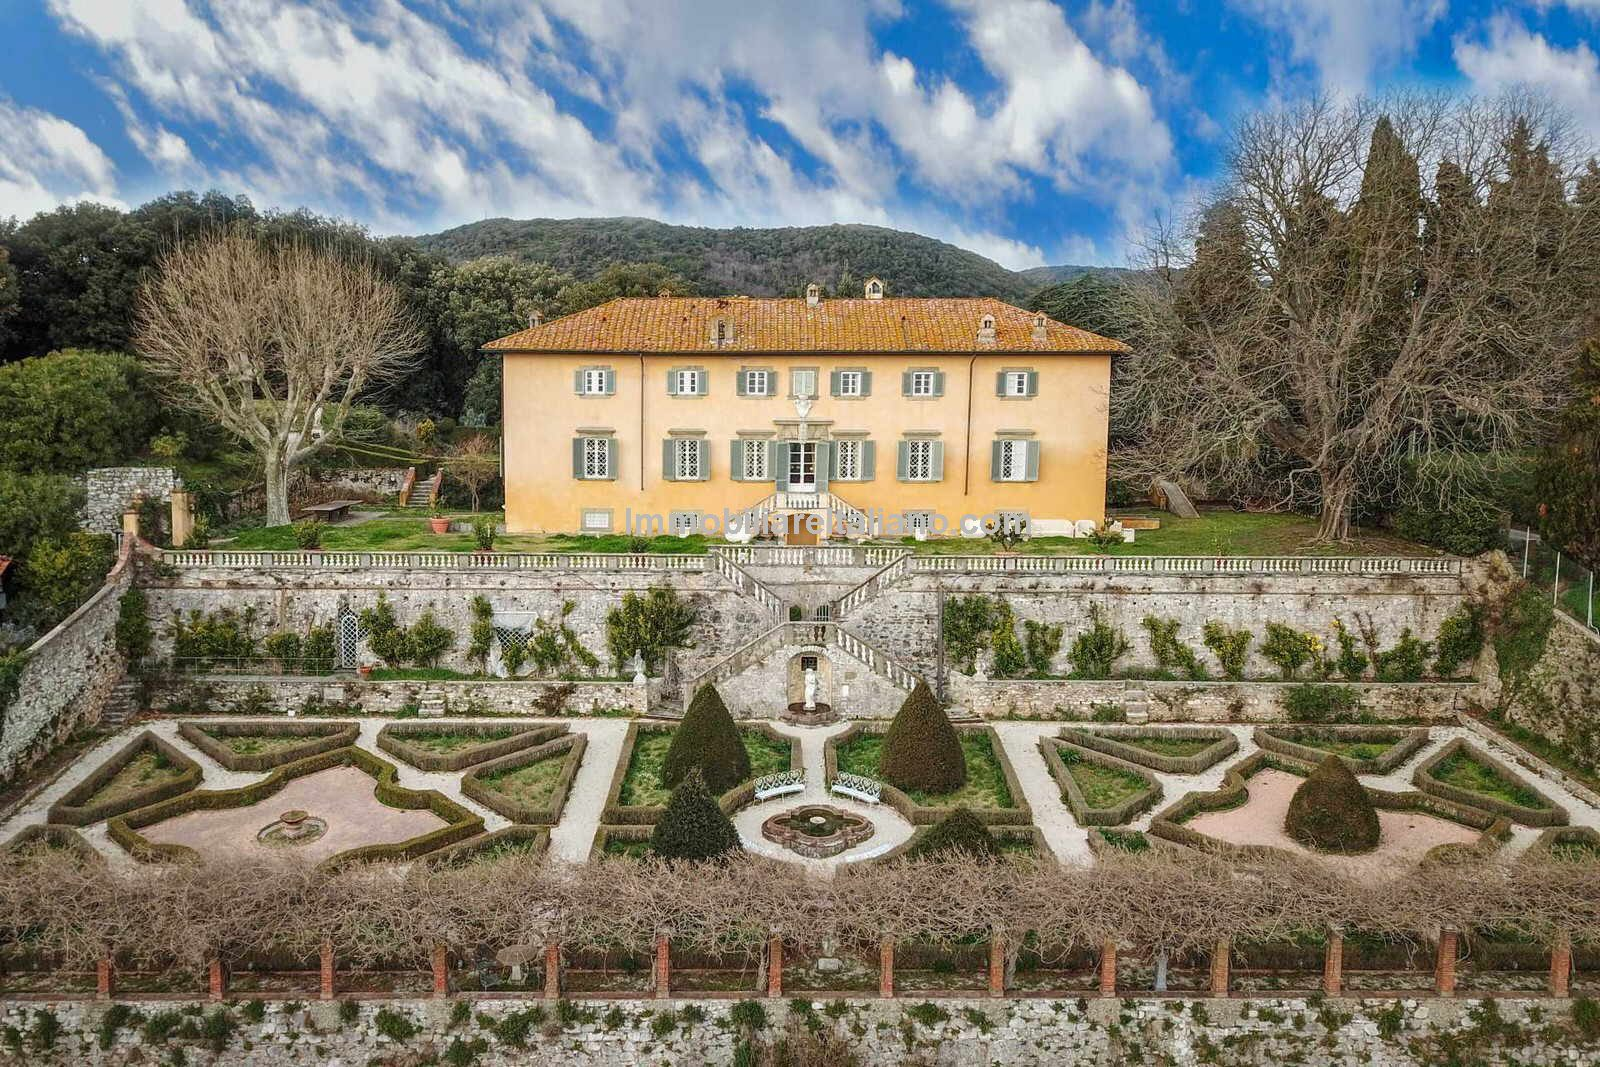 Aerial view of Luxury Historic and Palatial Italian Property for sale Lucca Tuscany.